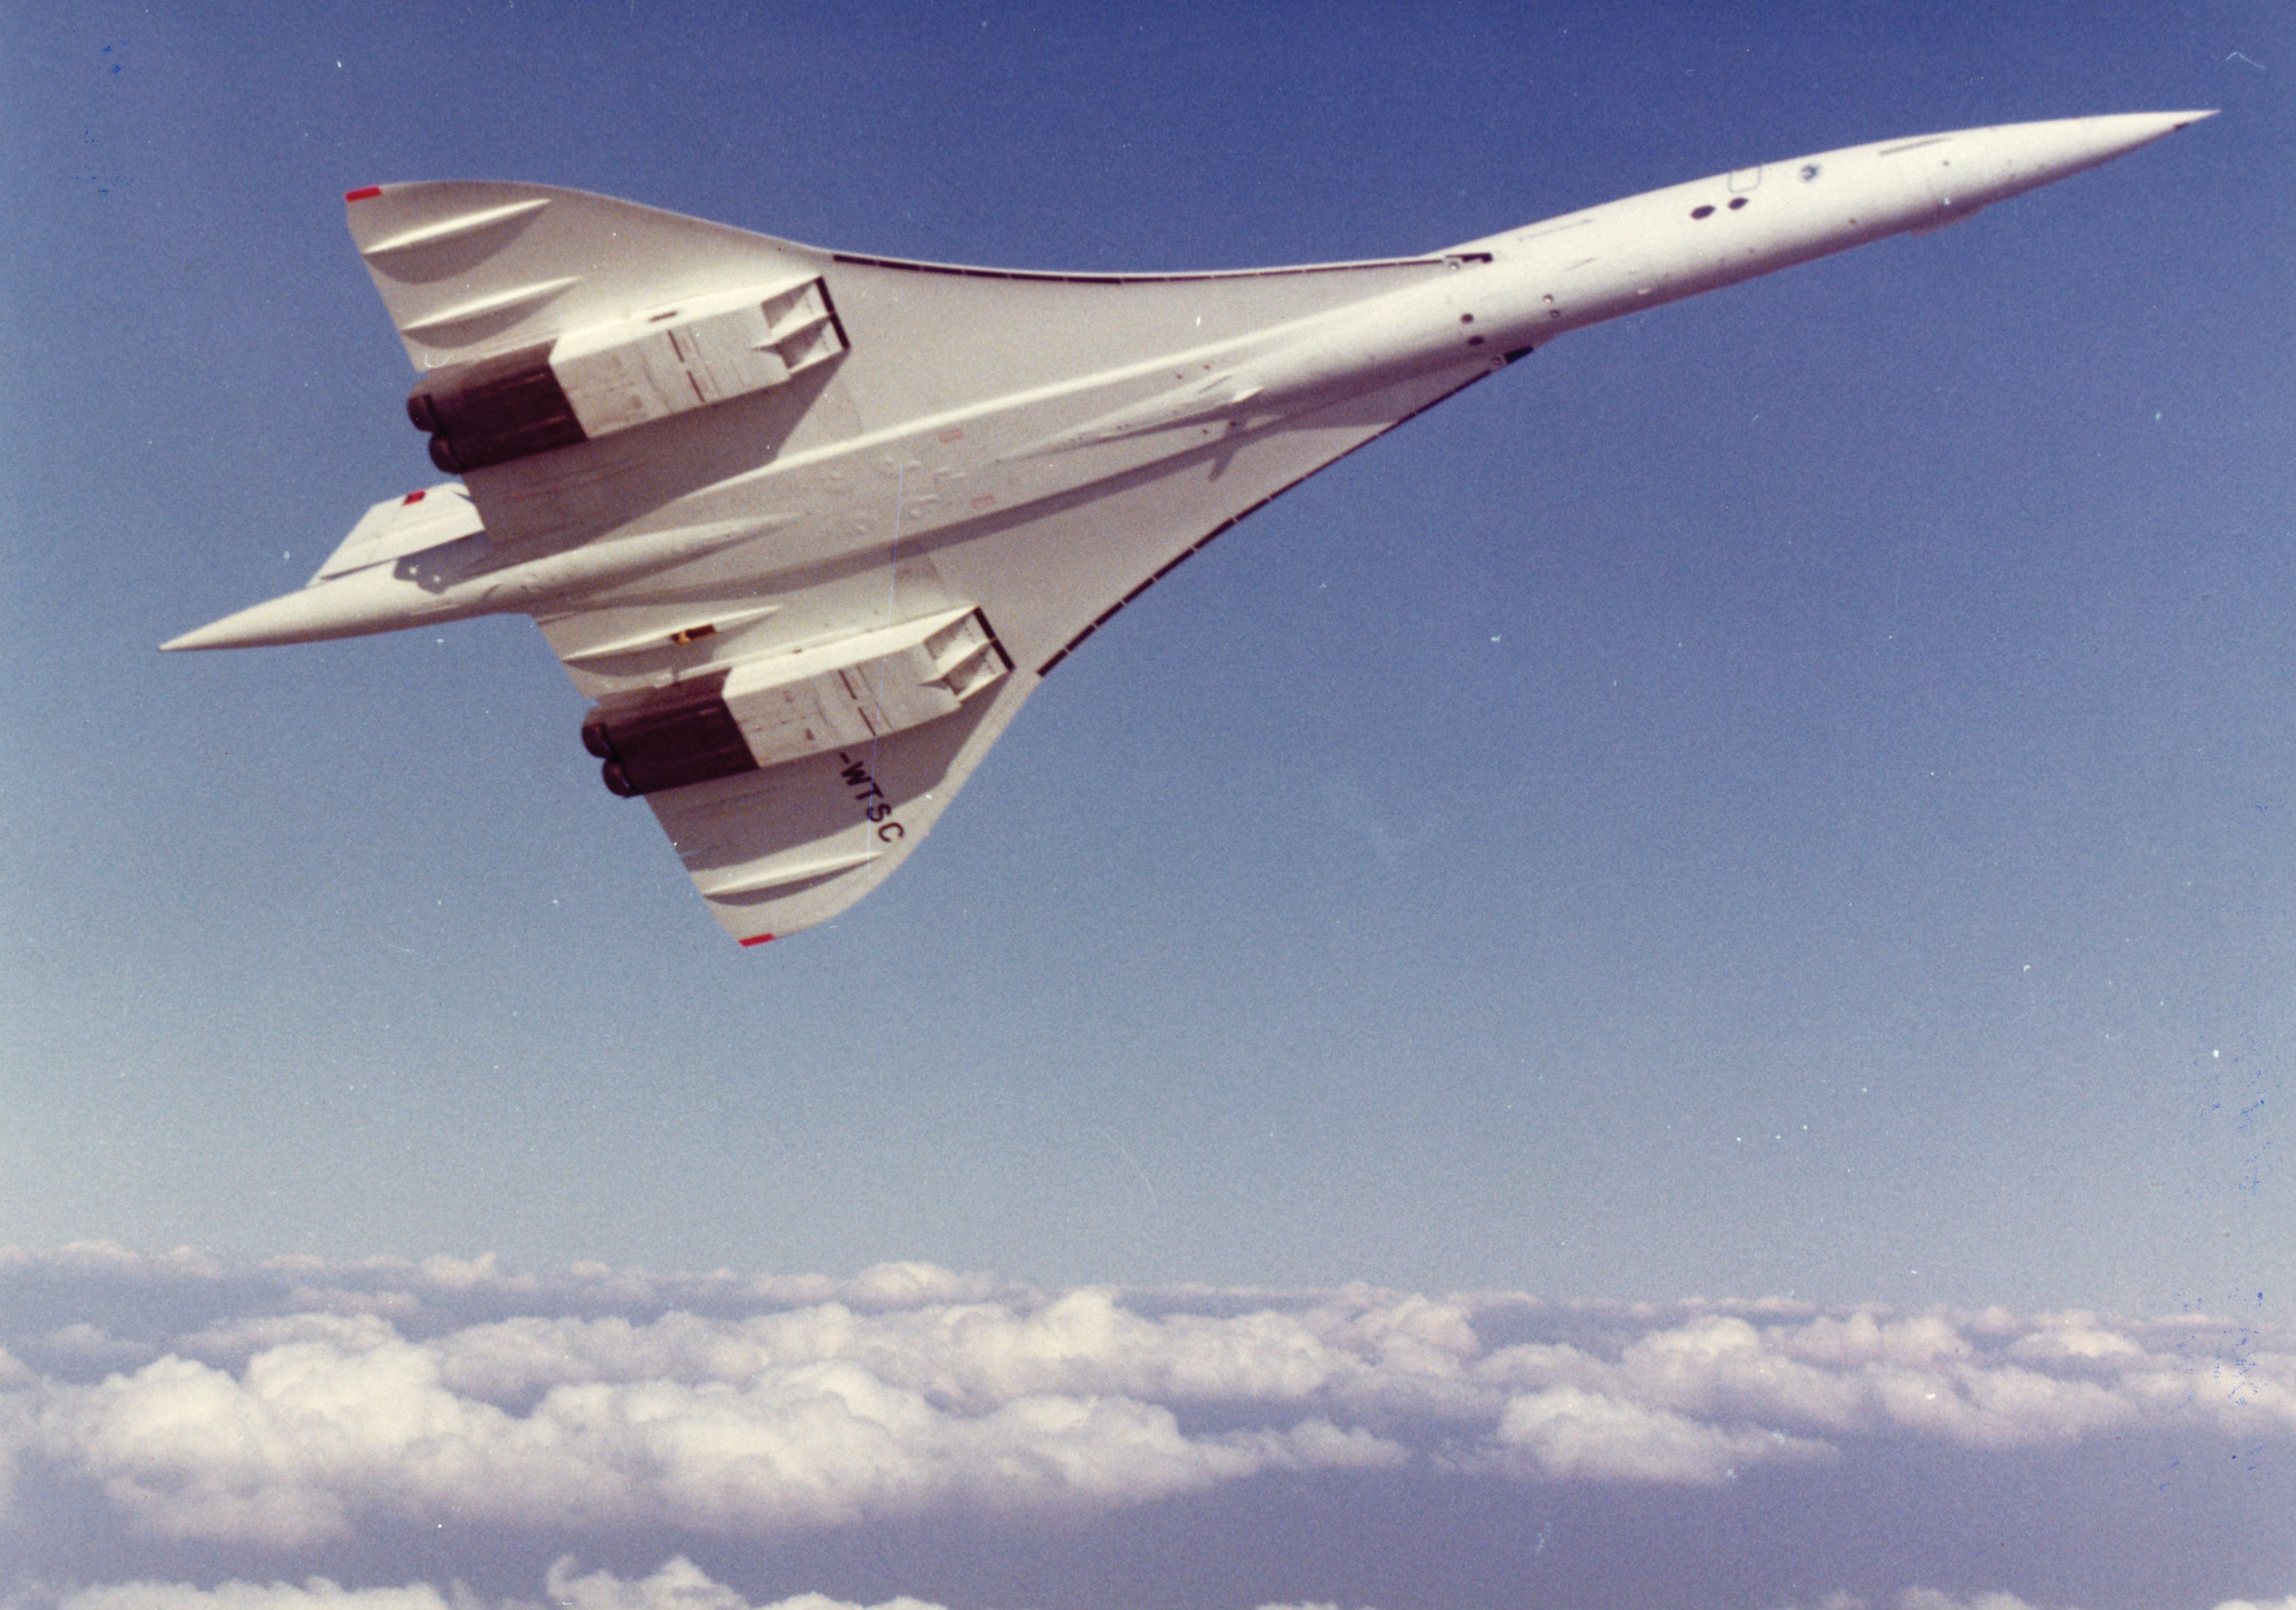 When Concorde was the future